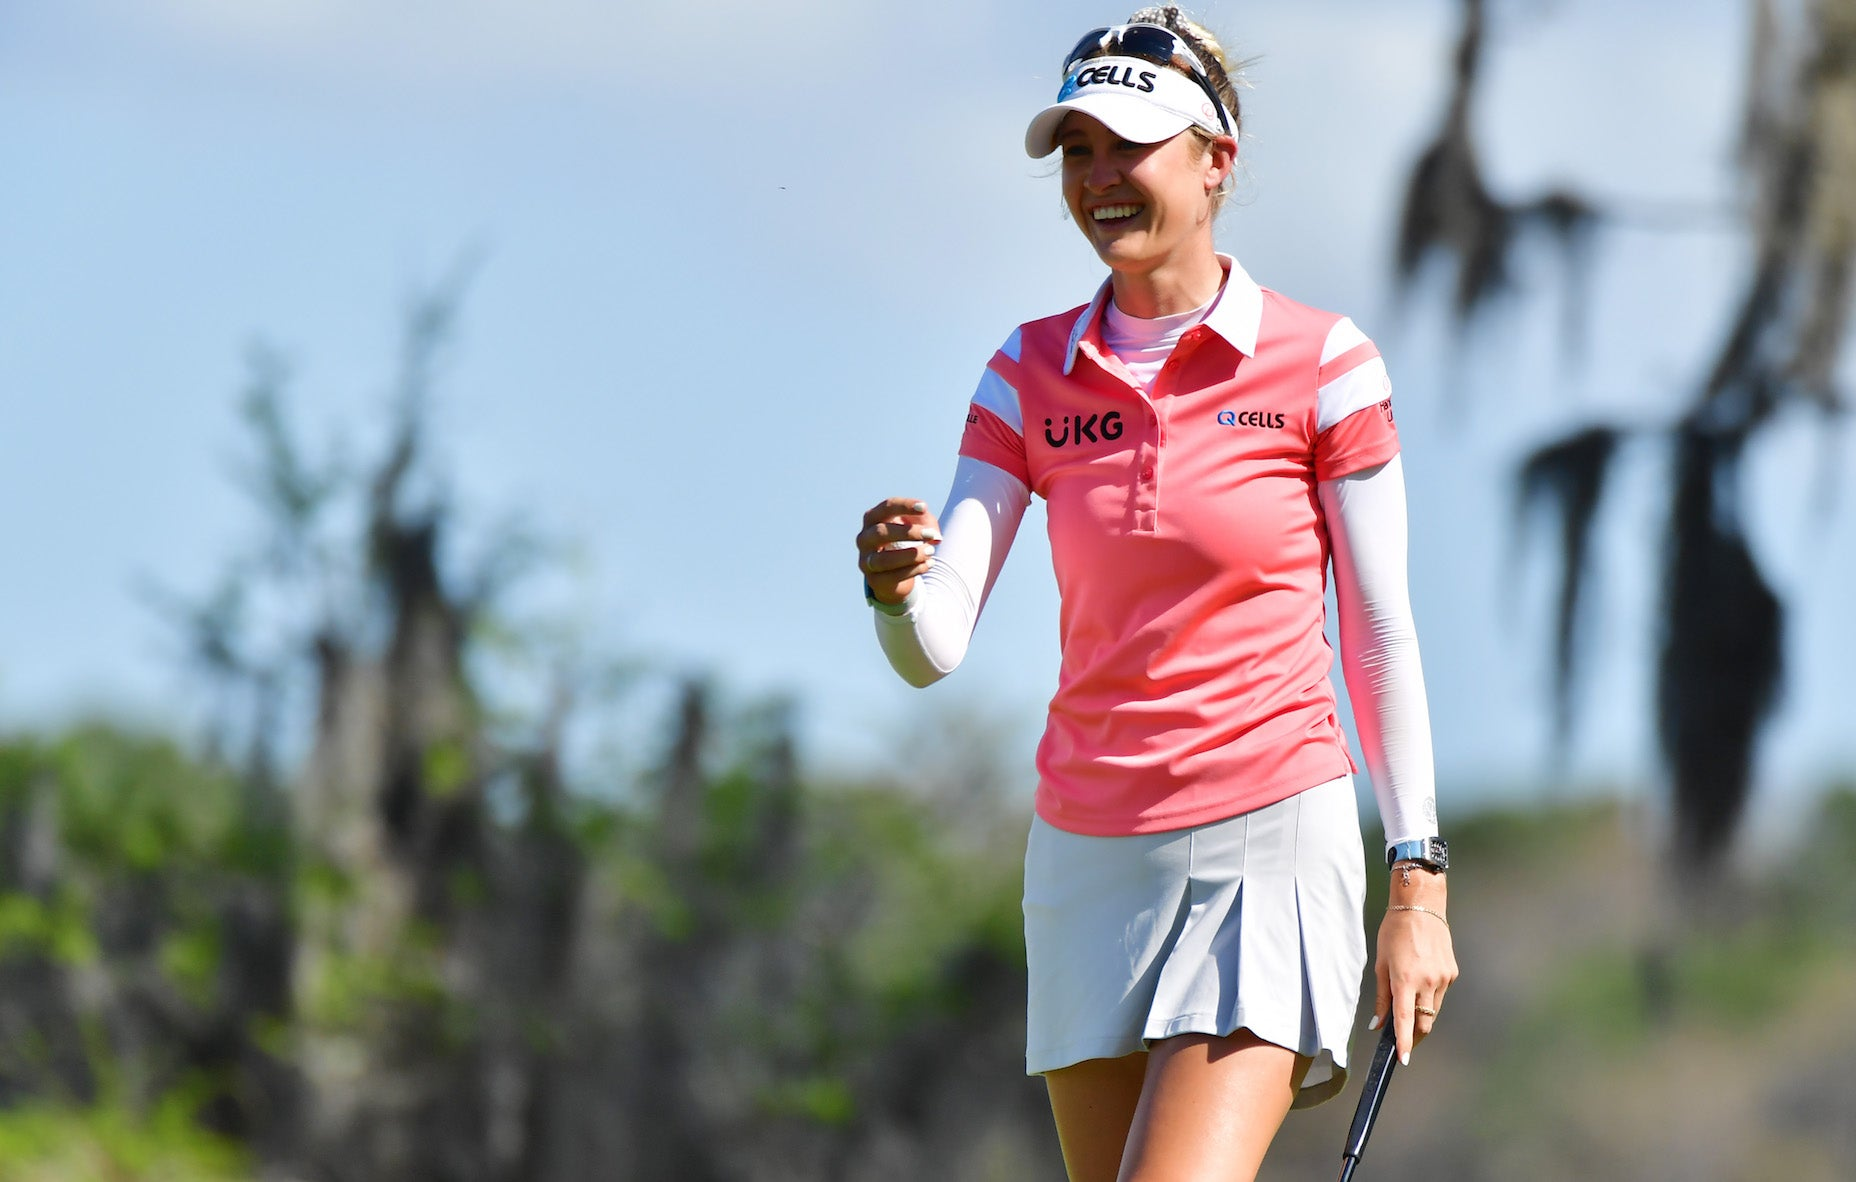 Rory McIlroy's skip, Nelly Korda's stress and 'severe' pins